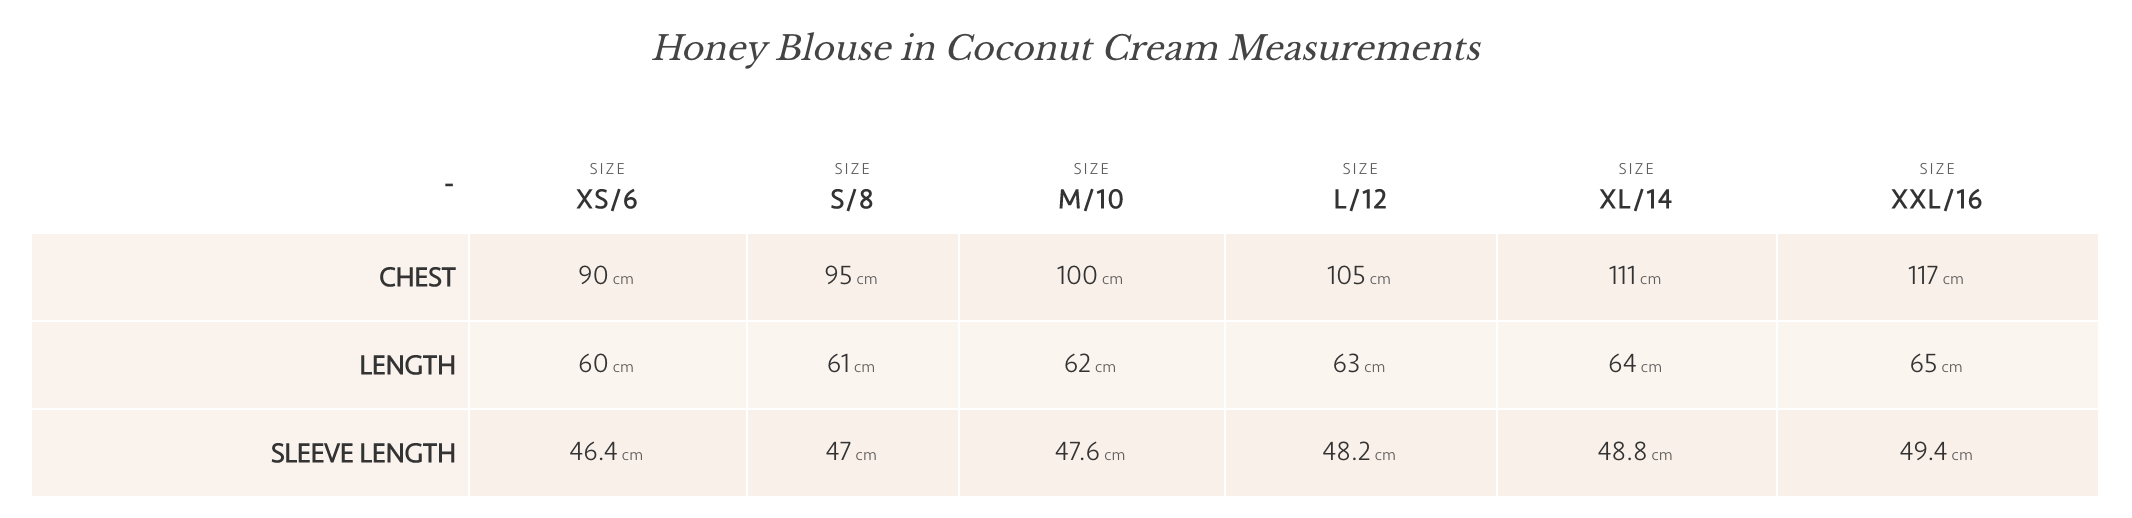 Coconut Honey Blouse Size Guide